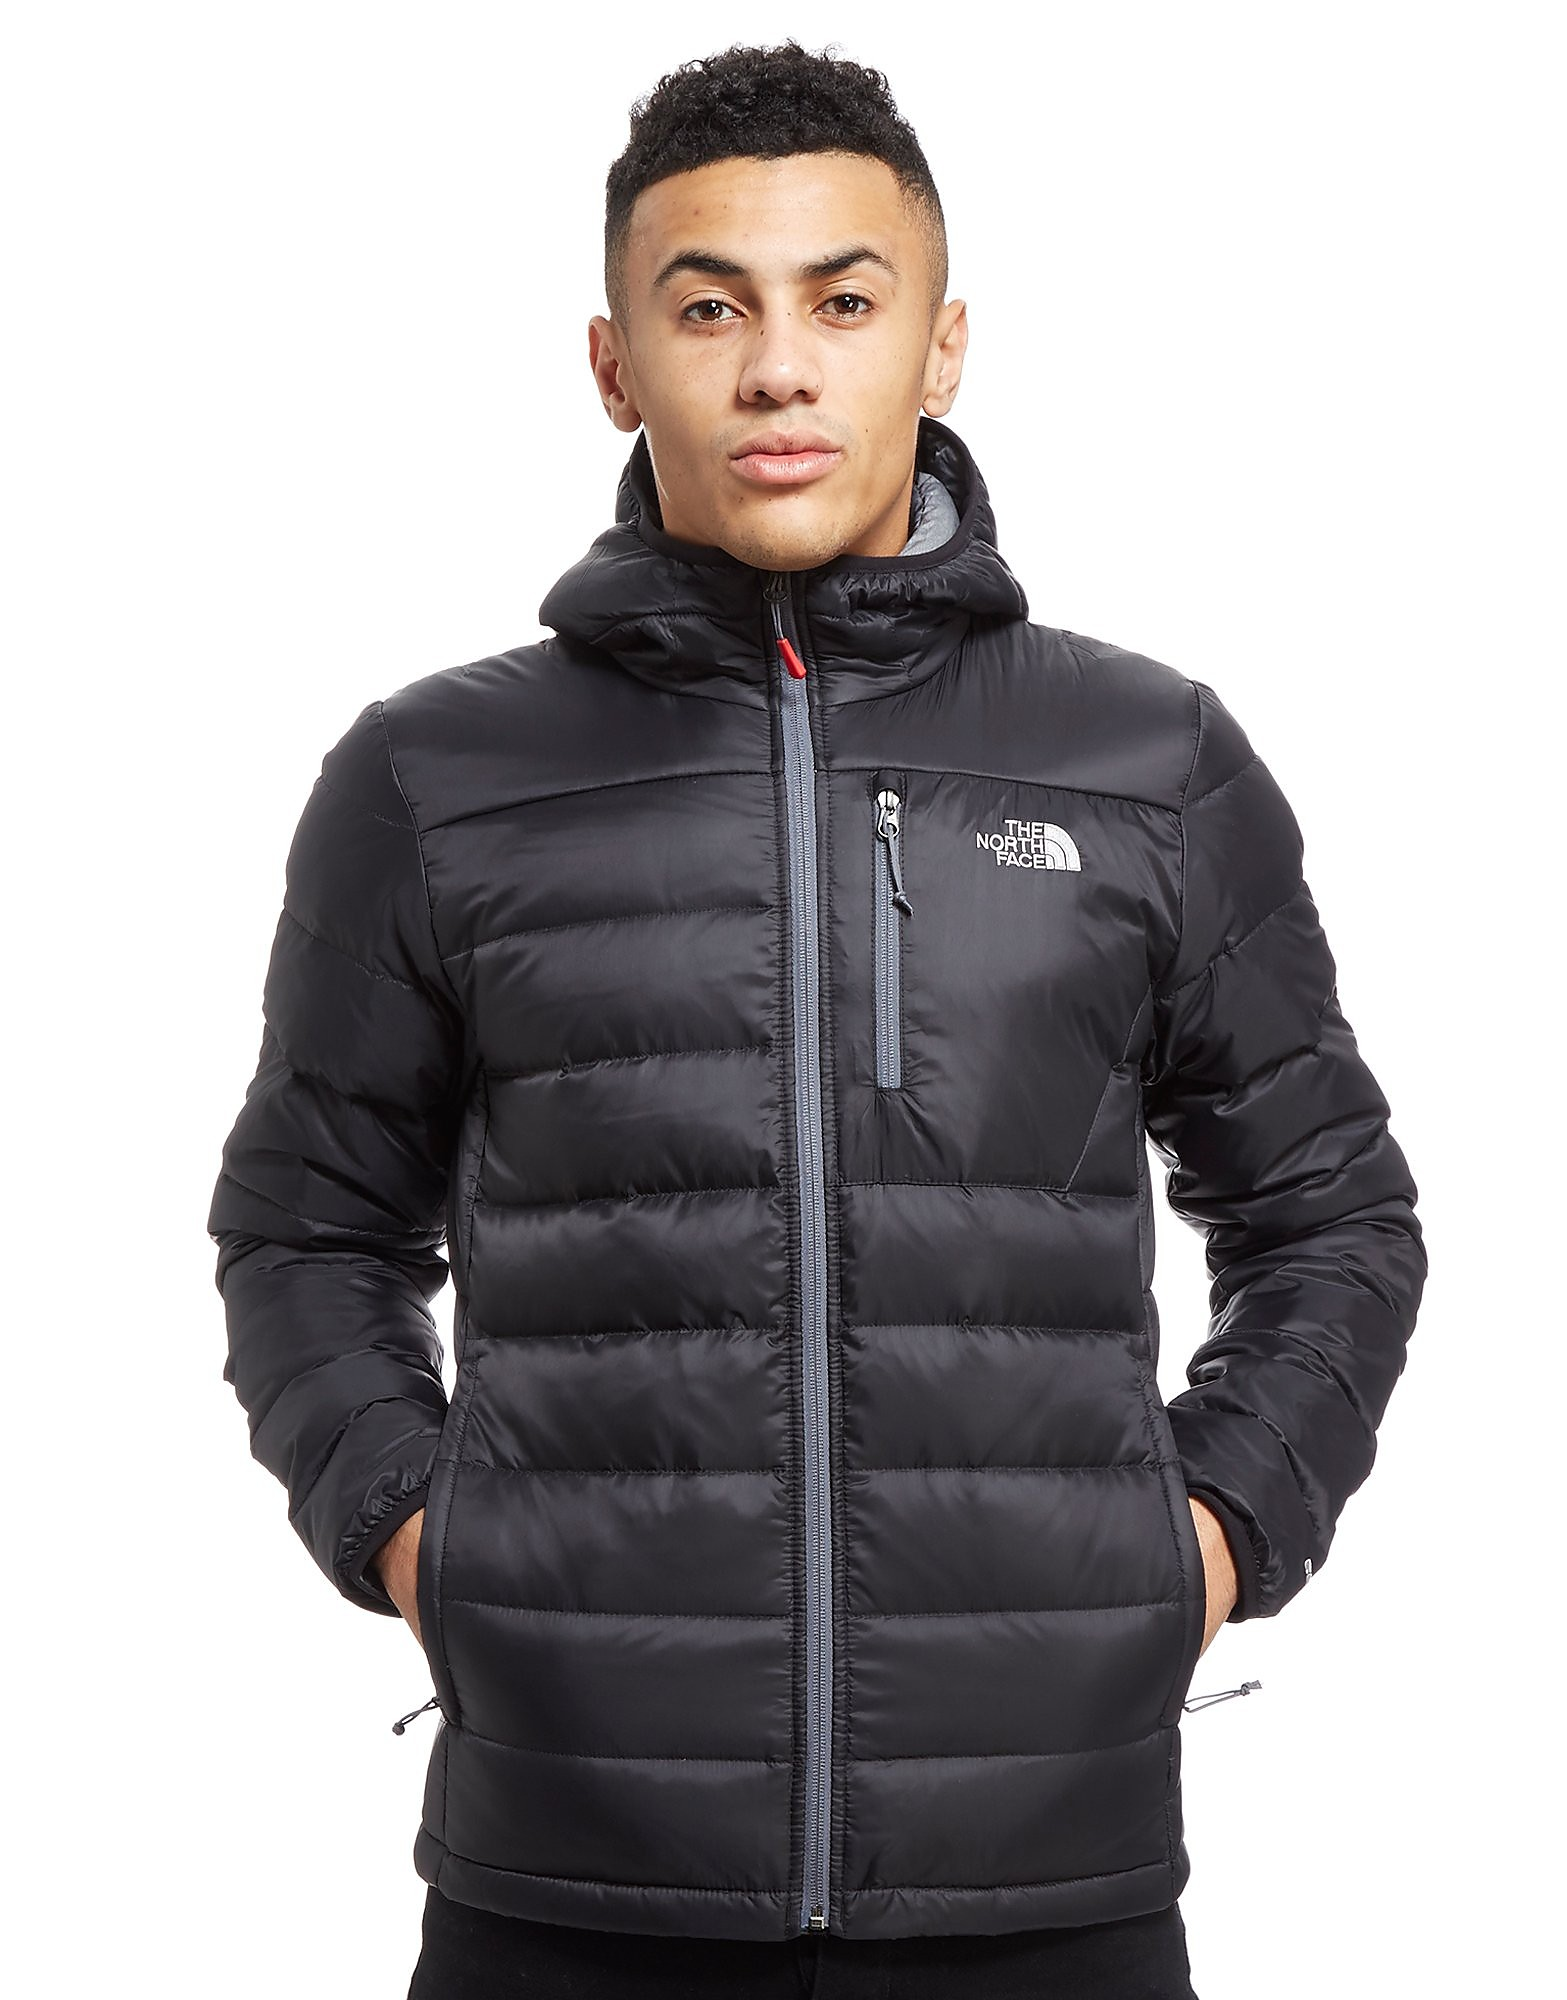 The North Face Aconcagua Down Puffa Jacket